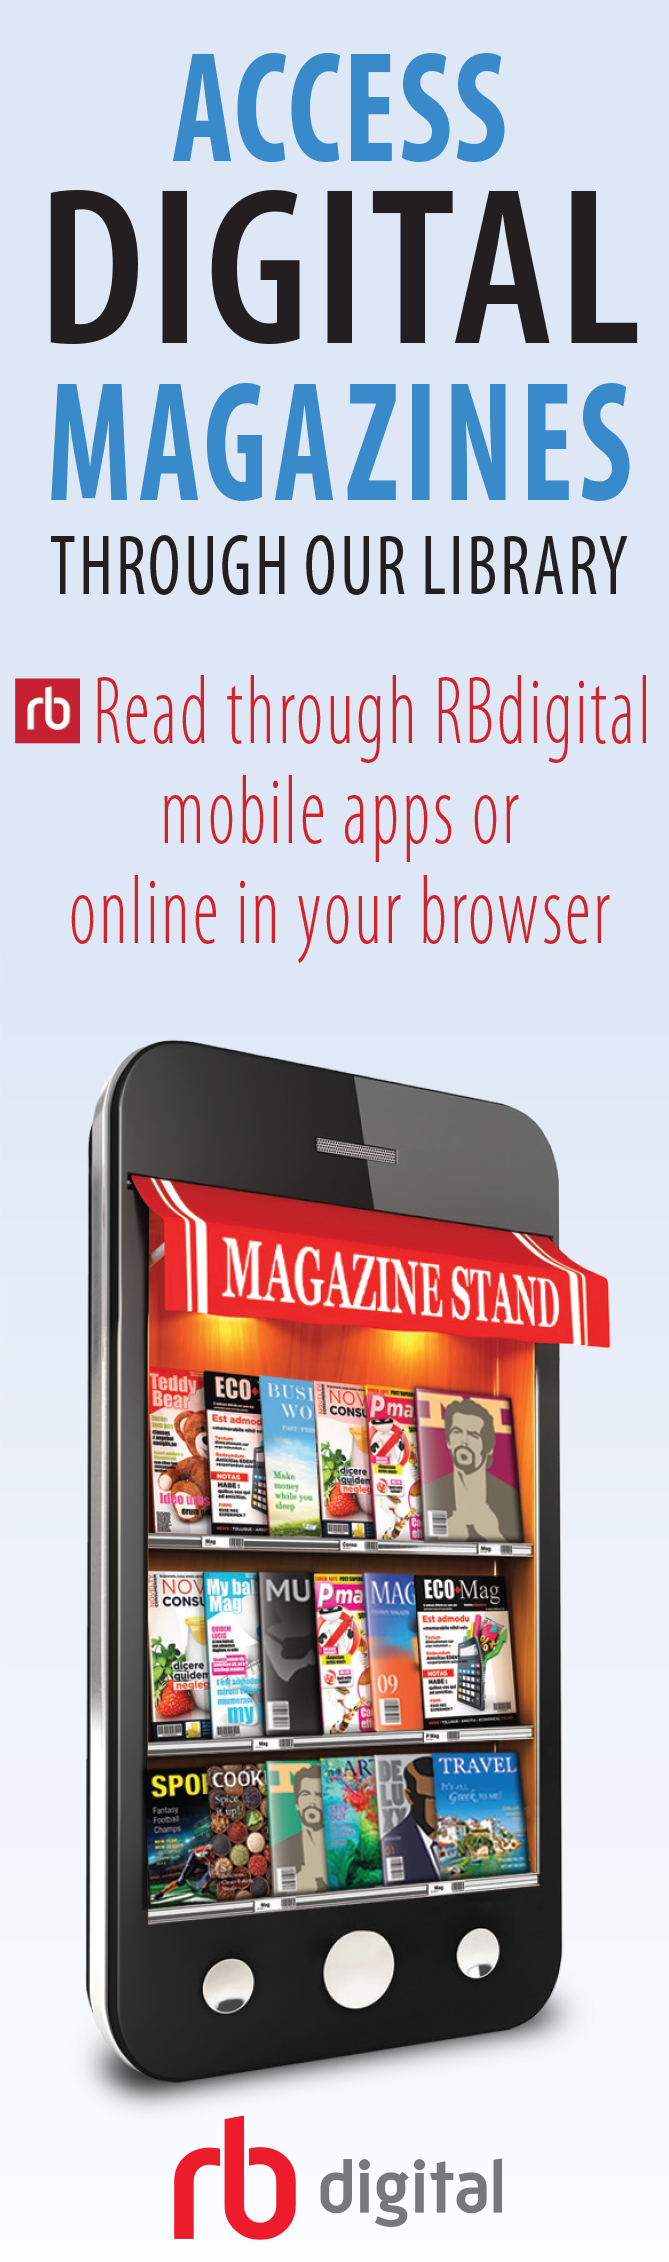 web ad for online magazine access